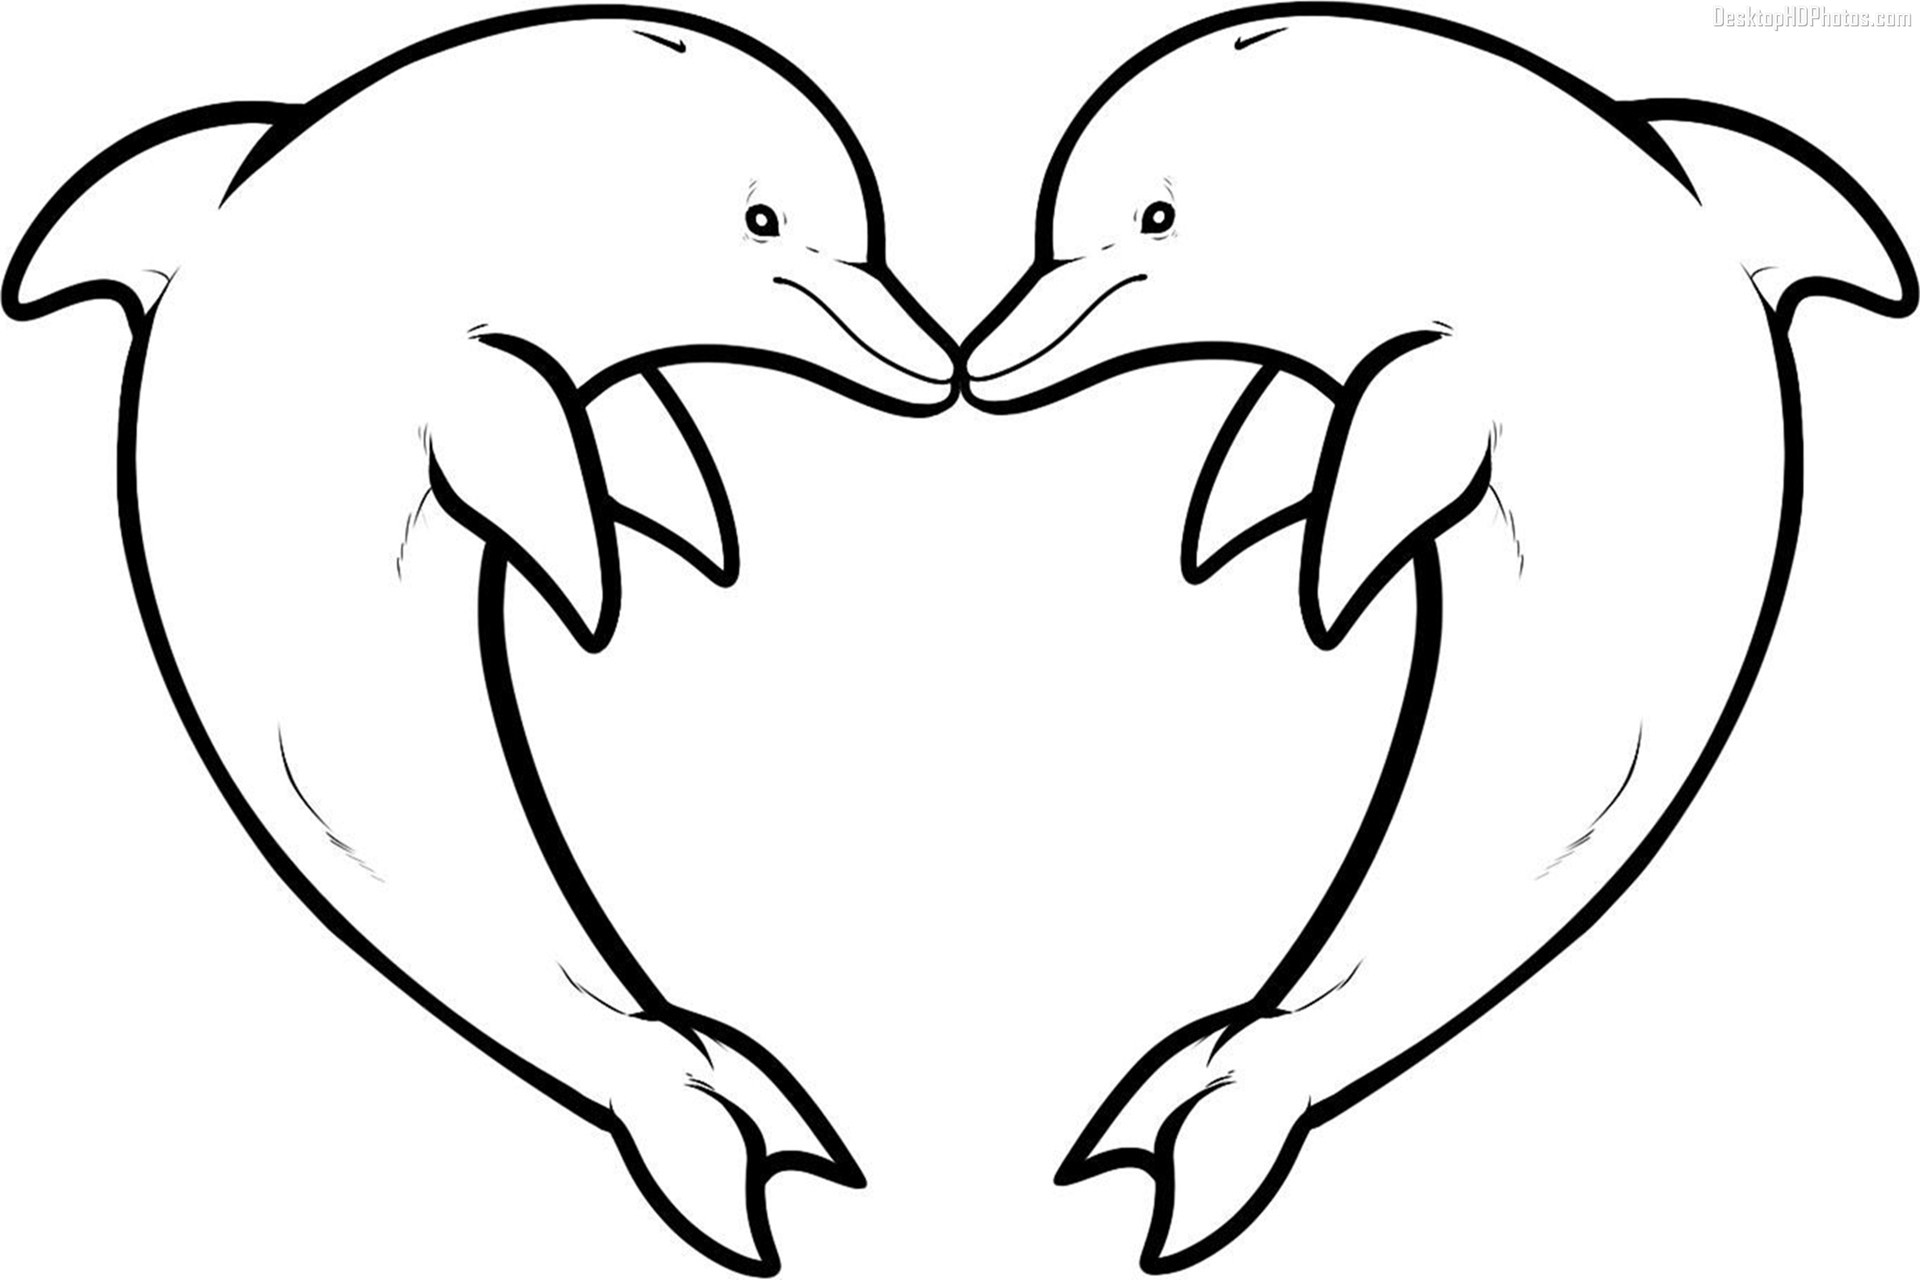 Coloring Pages : Dolphins Coloring Pages Dolphin To Print Out - Dolphin Coloring Sheets Free Printable